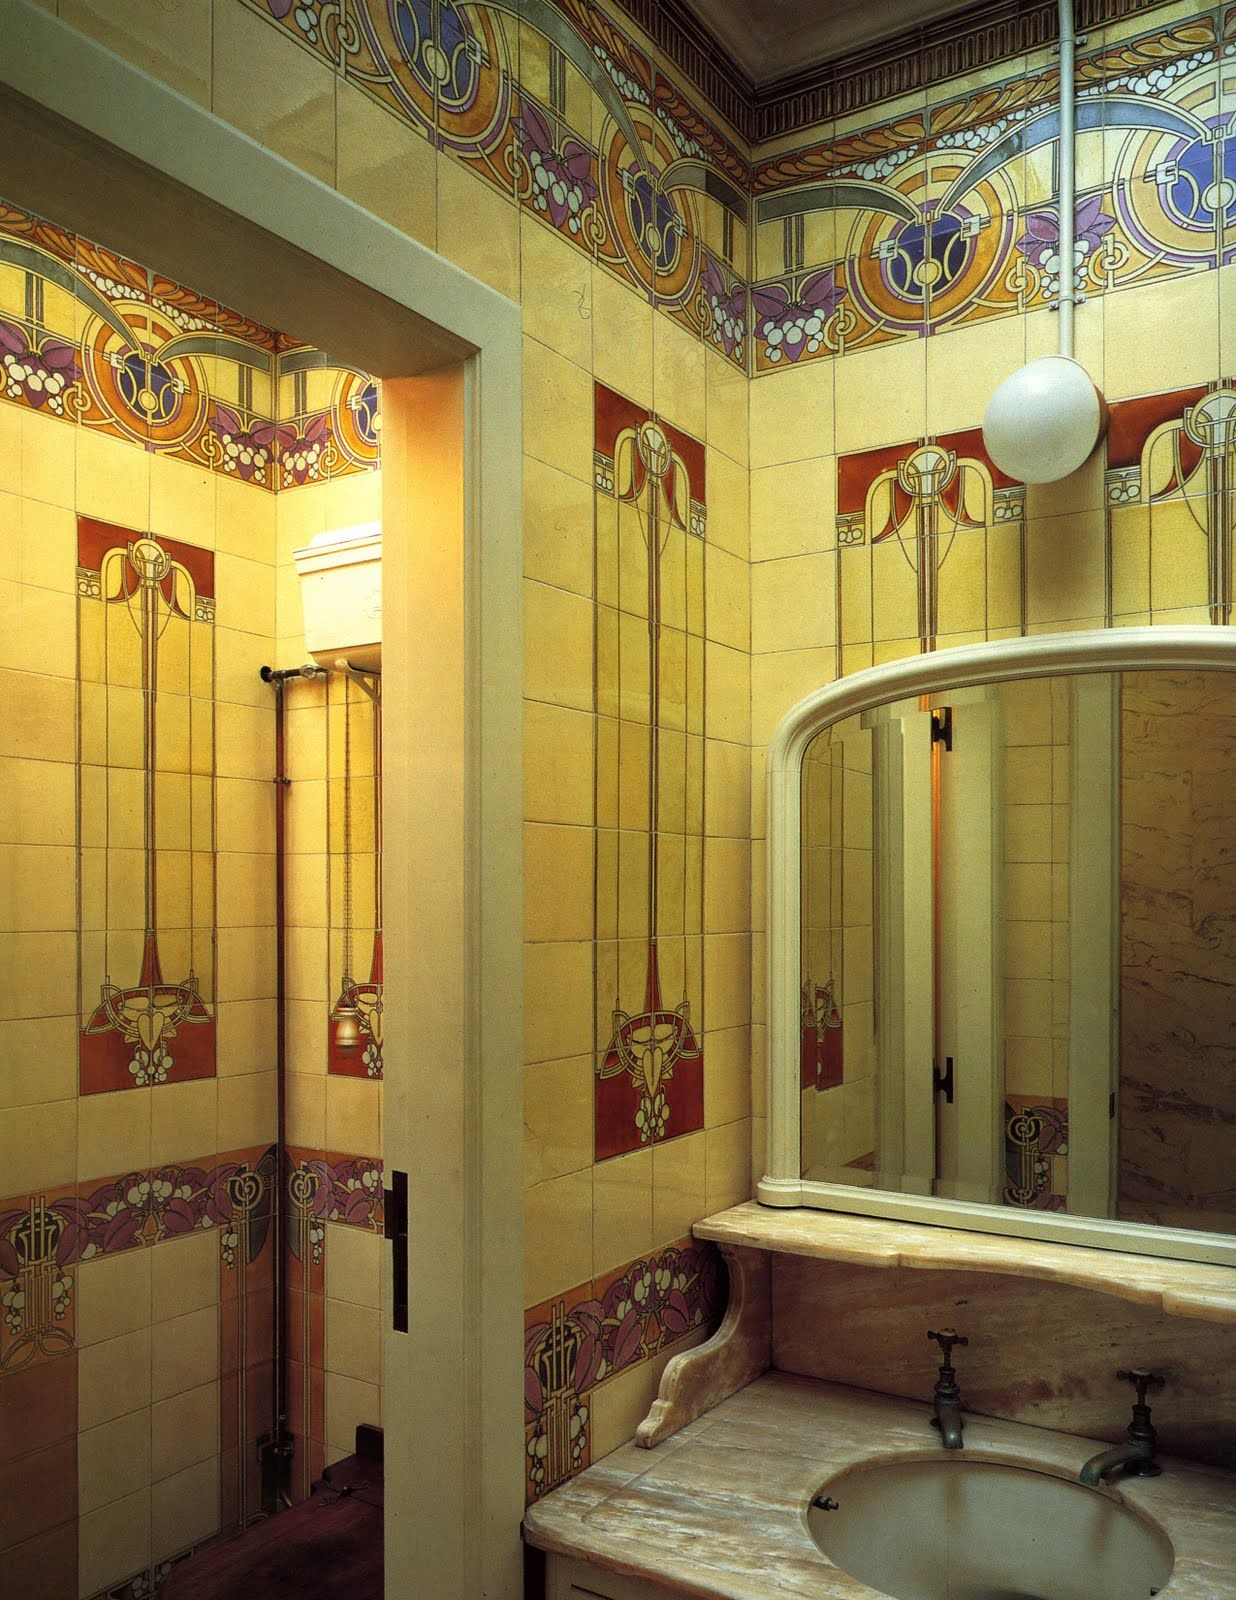 David Piper Tiles: Art Nouveau Tiles | Tiles | Pinterest ...